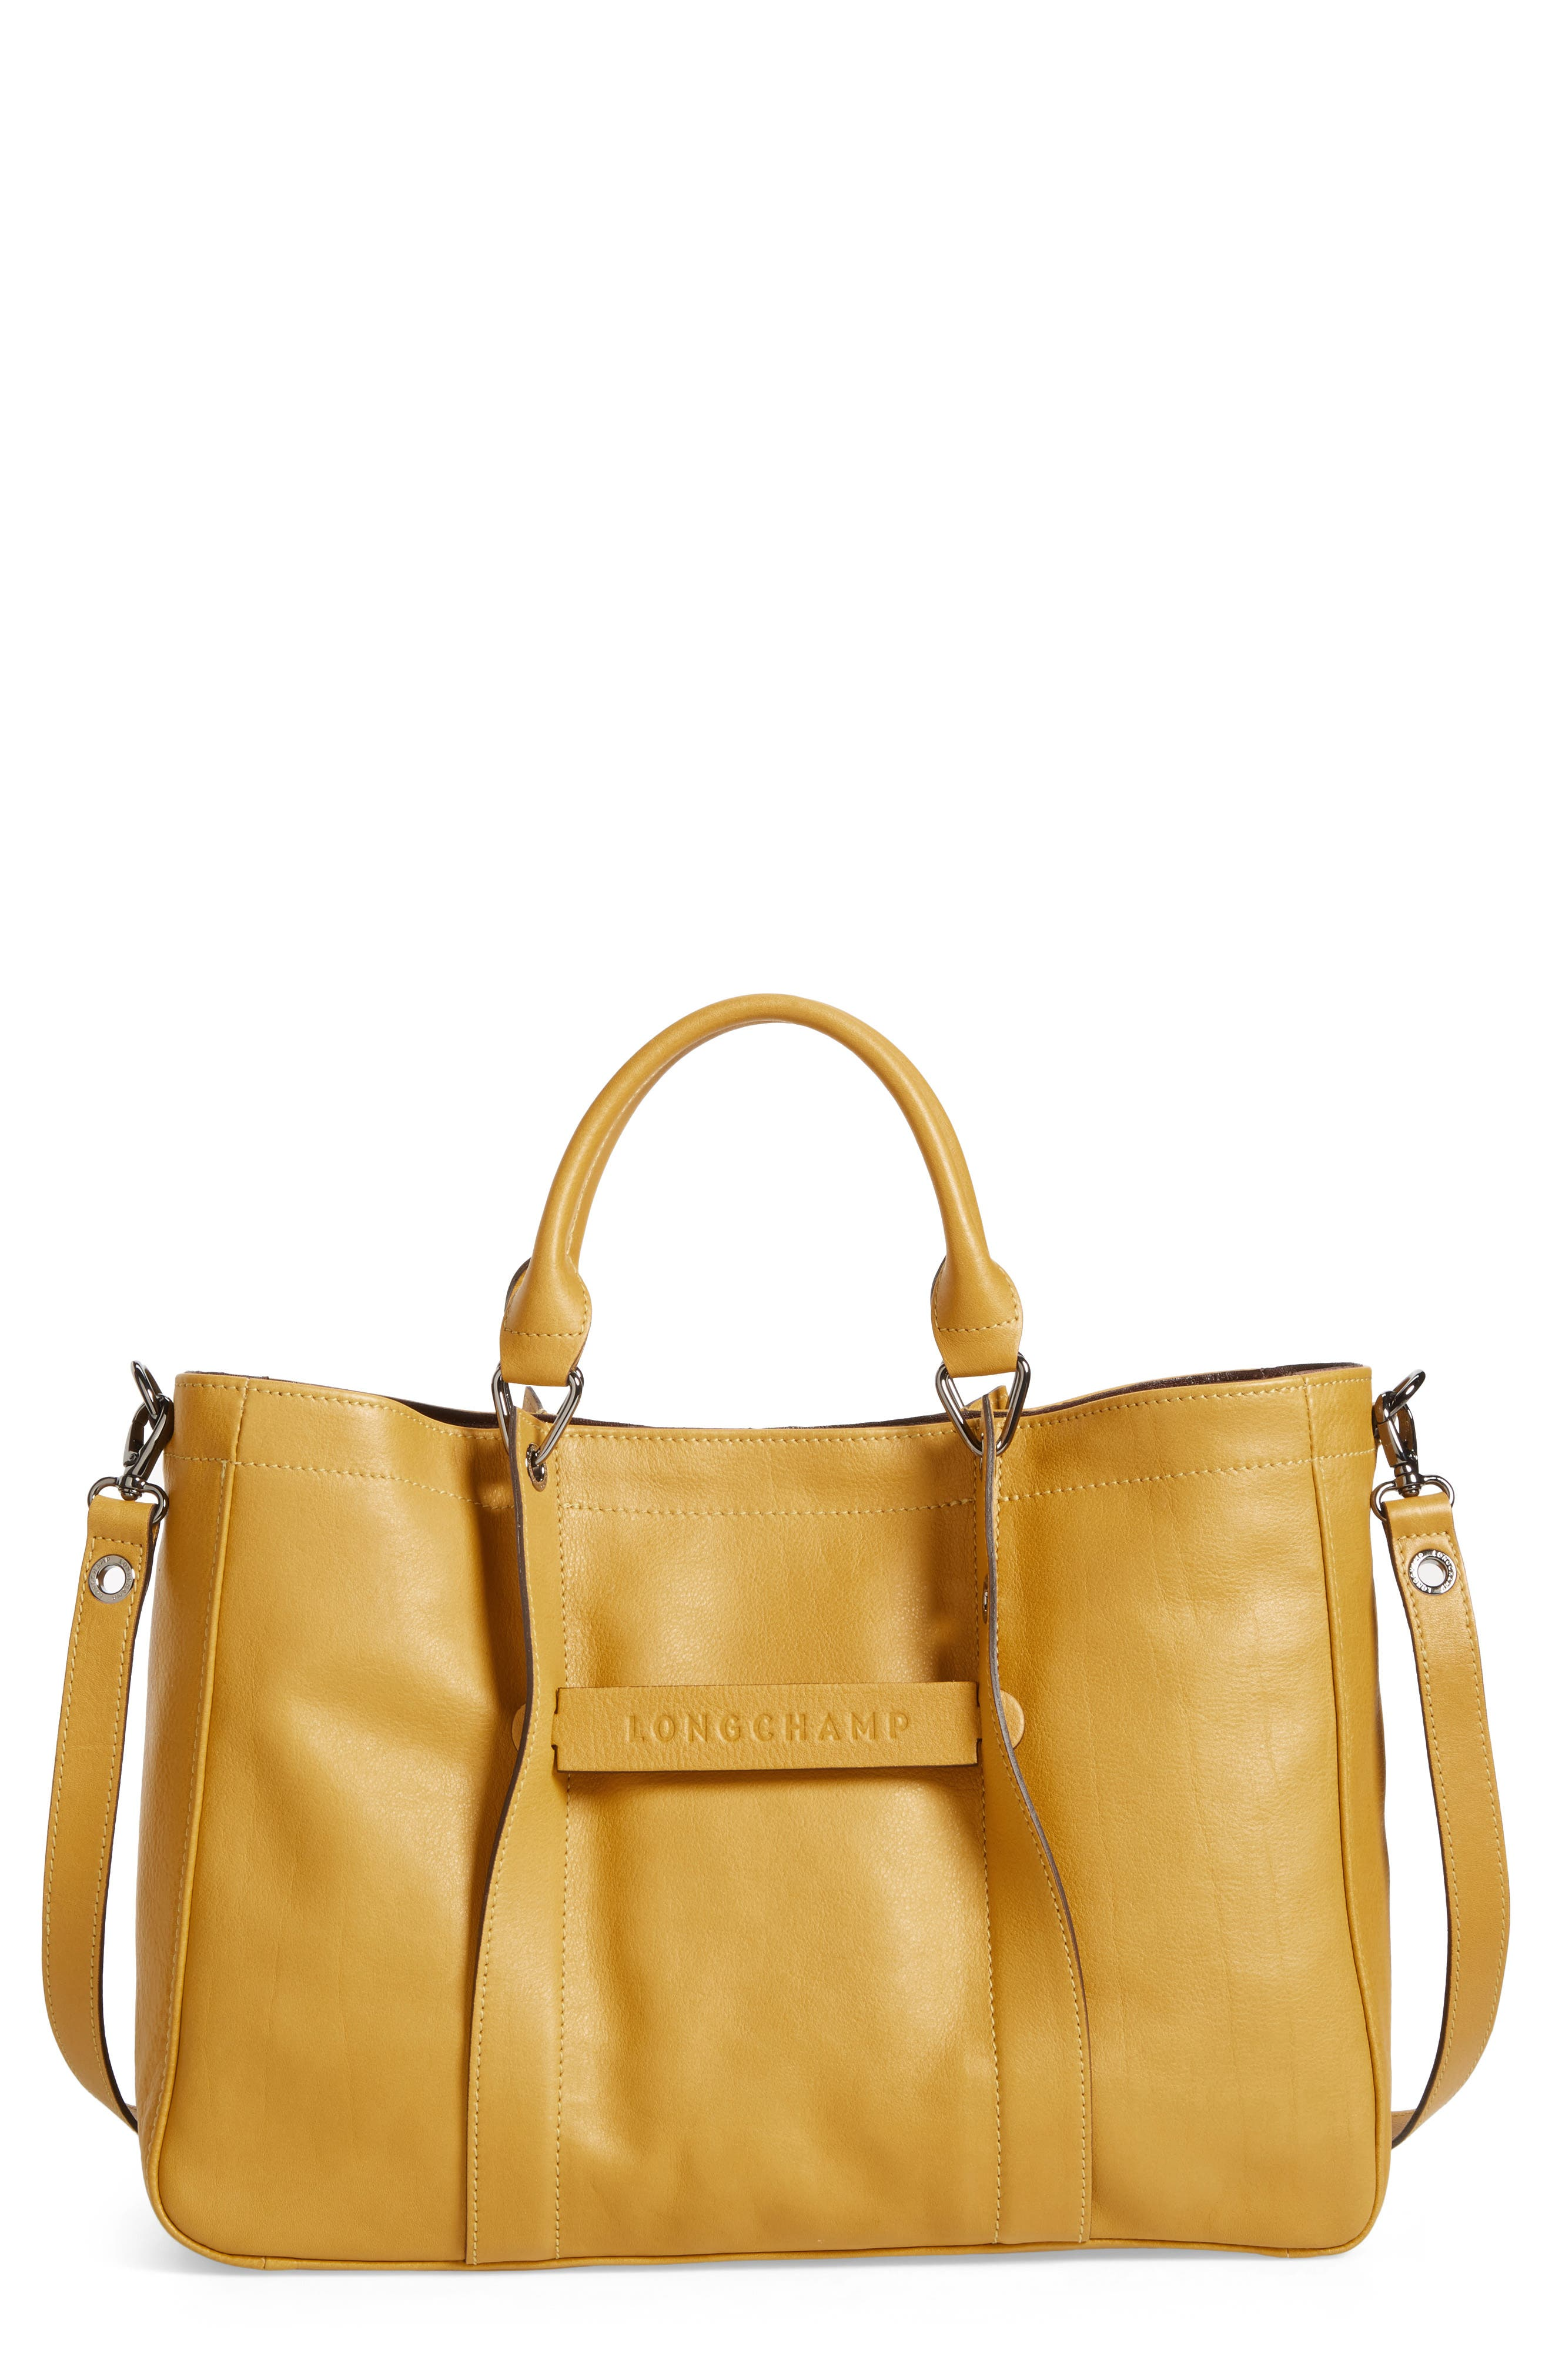 Main Image - Longchamp 3D Leather Tote